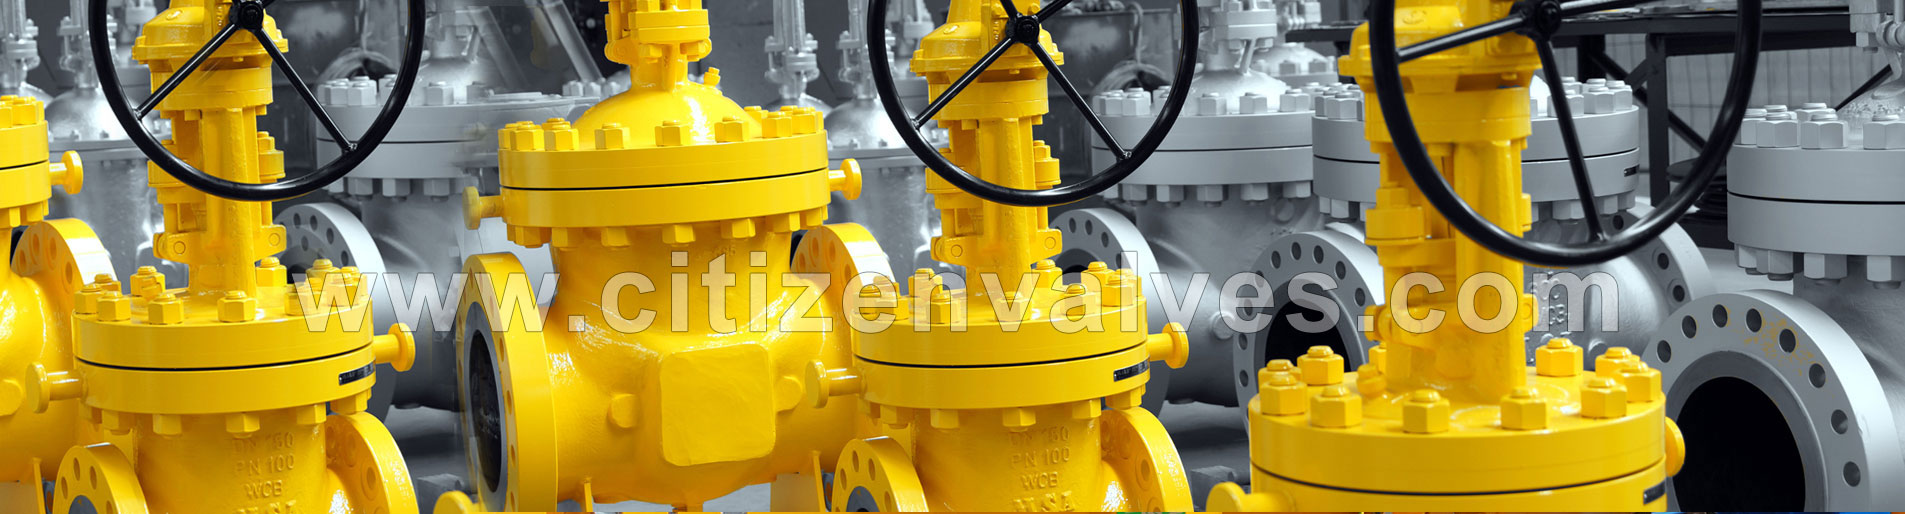 Gate Valves Suppliers Dealers Distributors